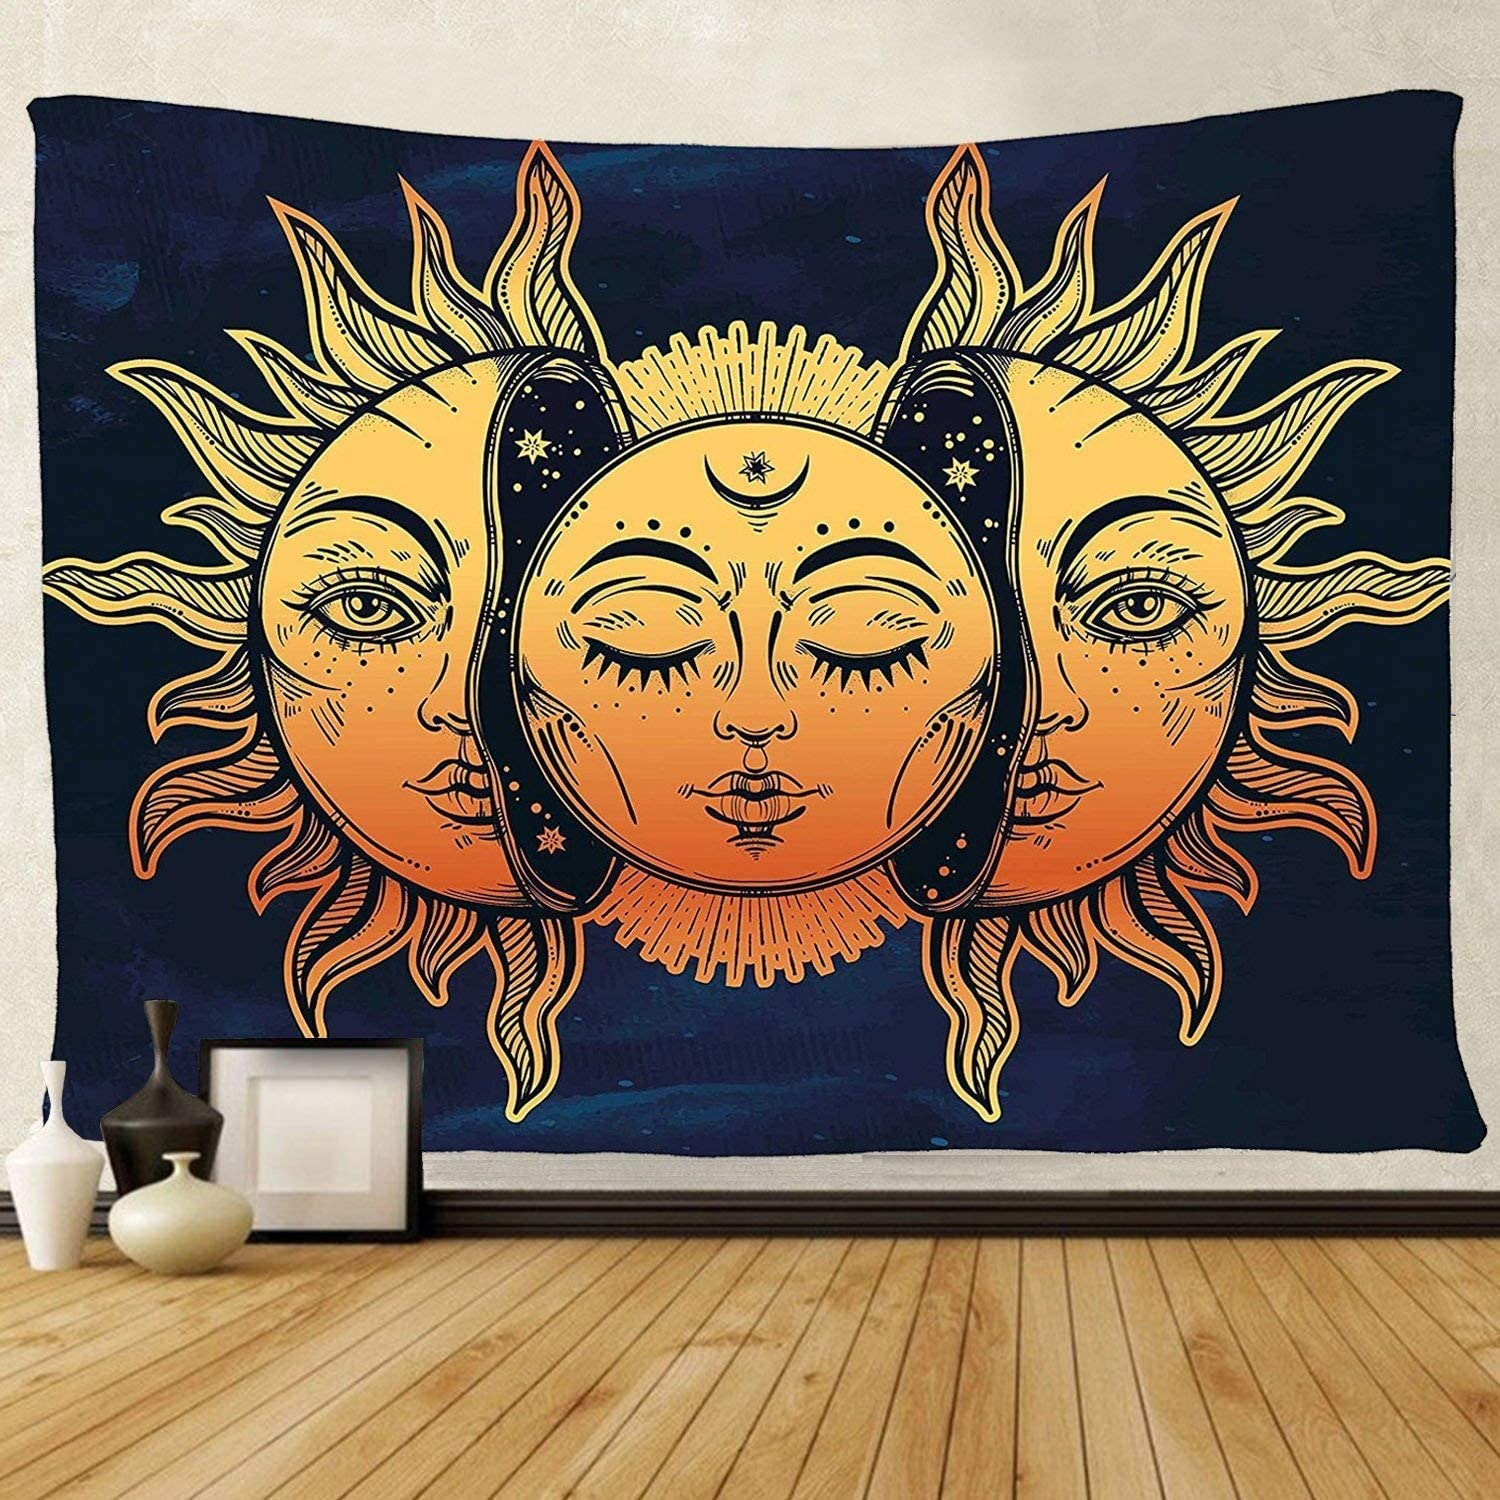 TENALY Tapestry Wall Direct stock discount Wholesale Hanging Sun Small Wal and Moon Psychedelic